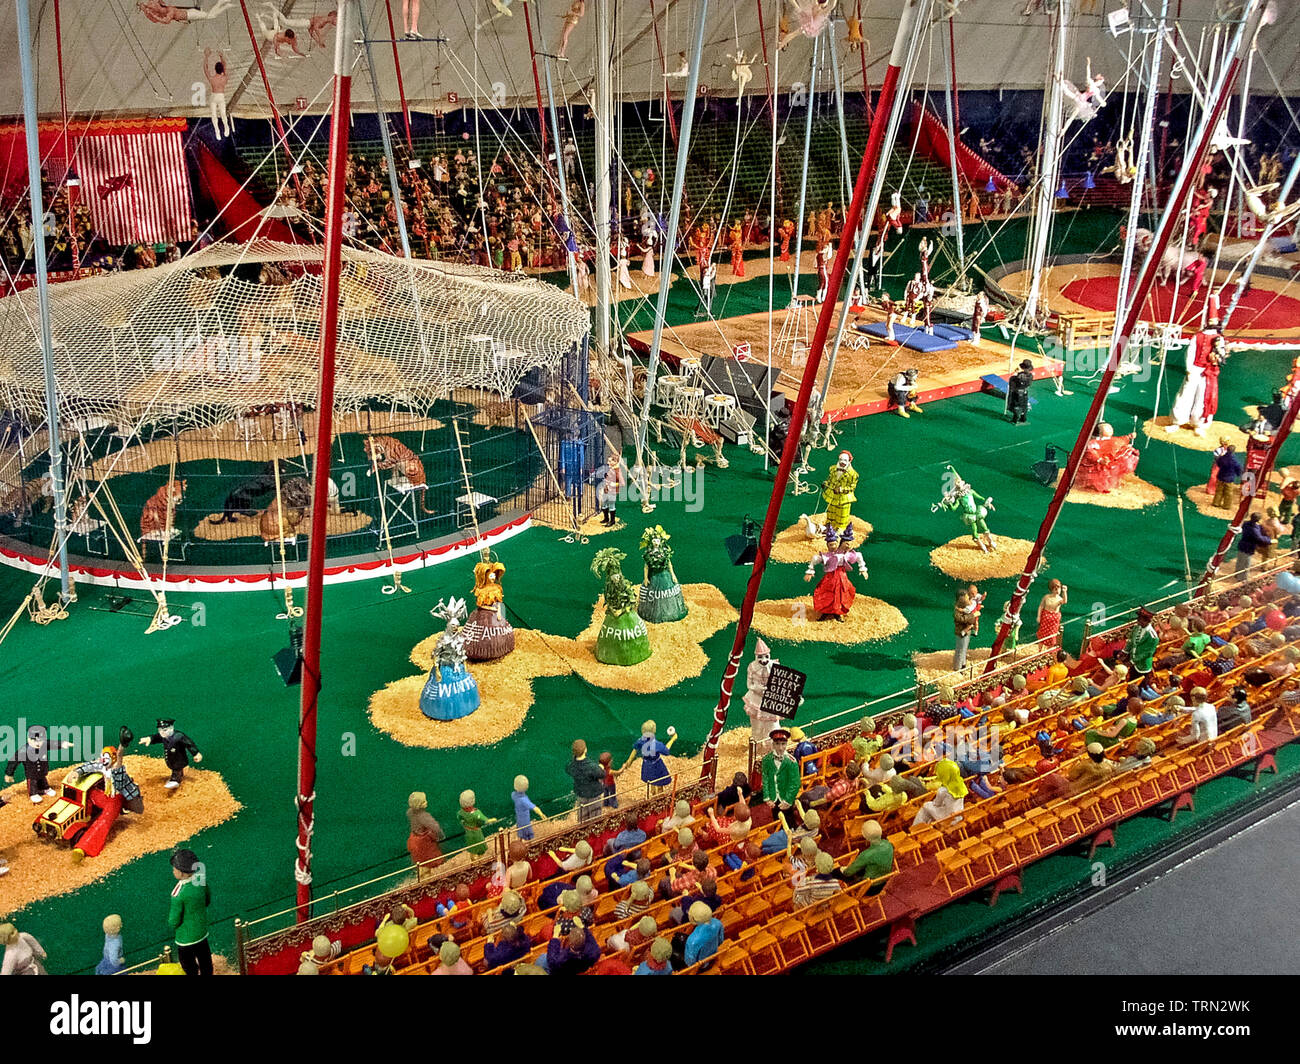 Thousands Of Wooden Pieces Were Hand Carved And Painted To Create The Howard Bros Circus A Miniature Replica Of The Famous Ringling Bros And Barnum Bailey Circus That Can Be Seen